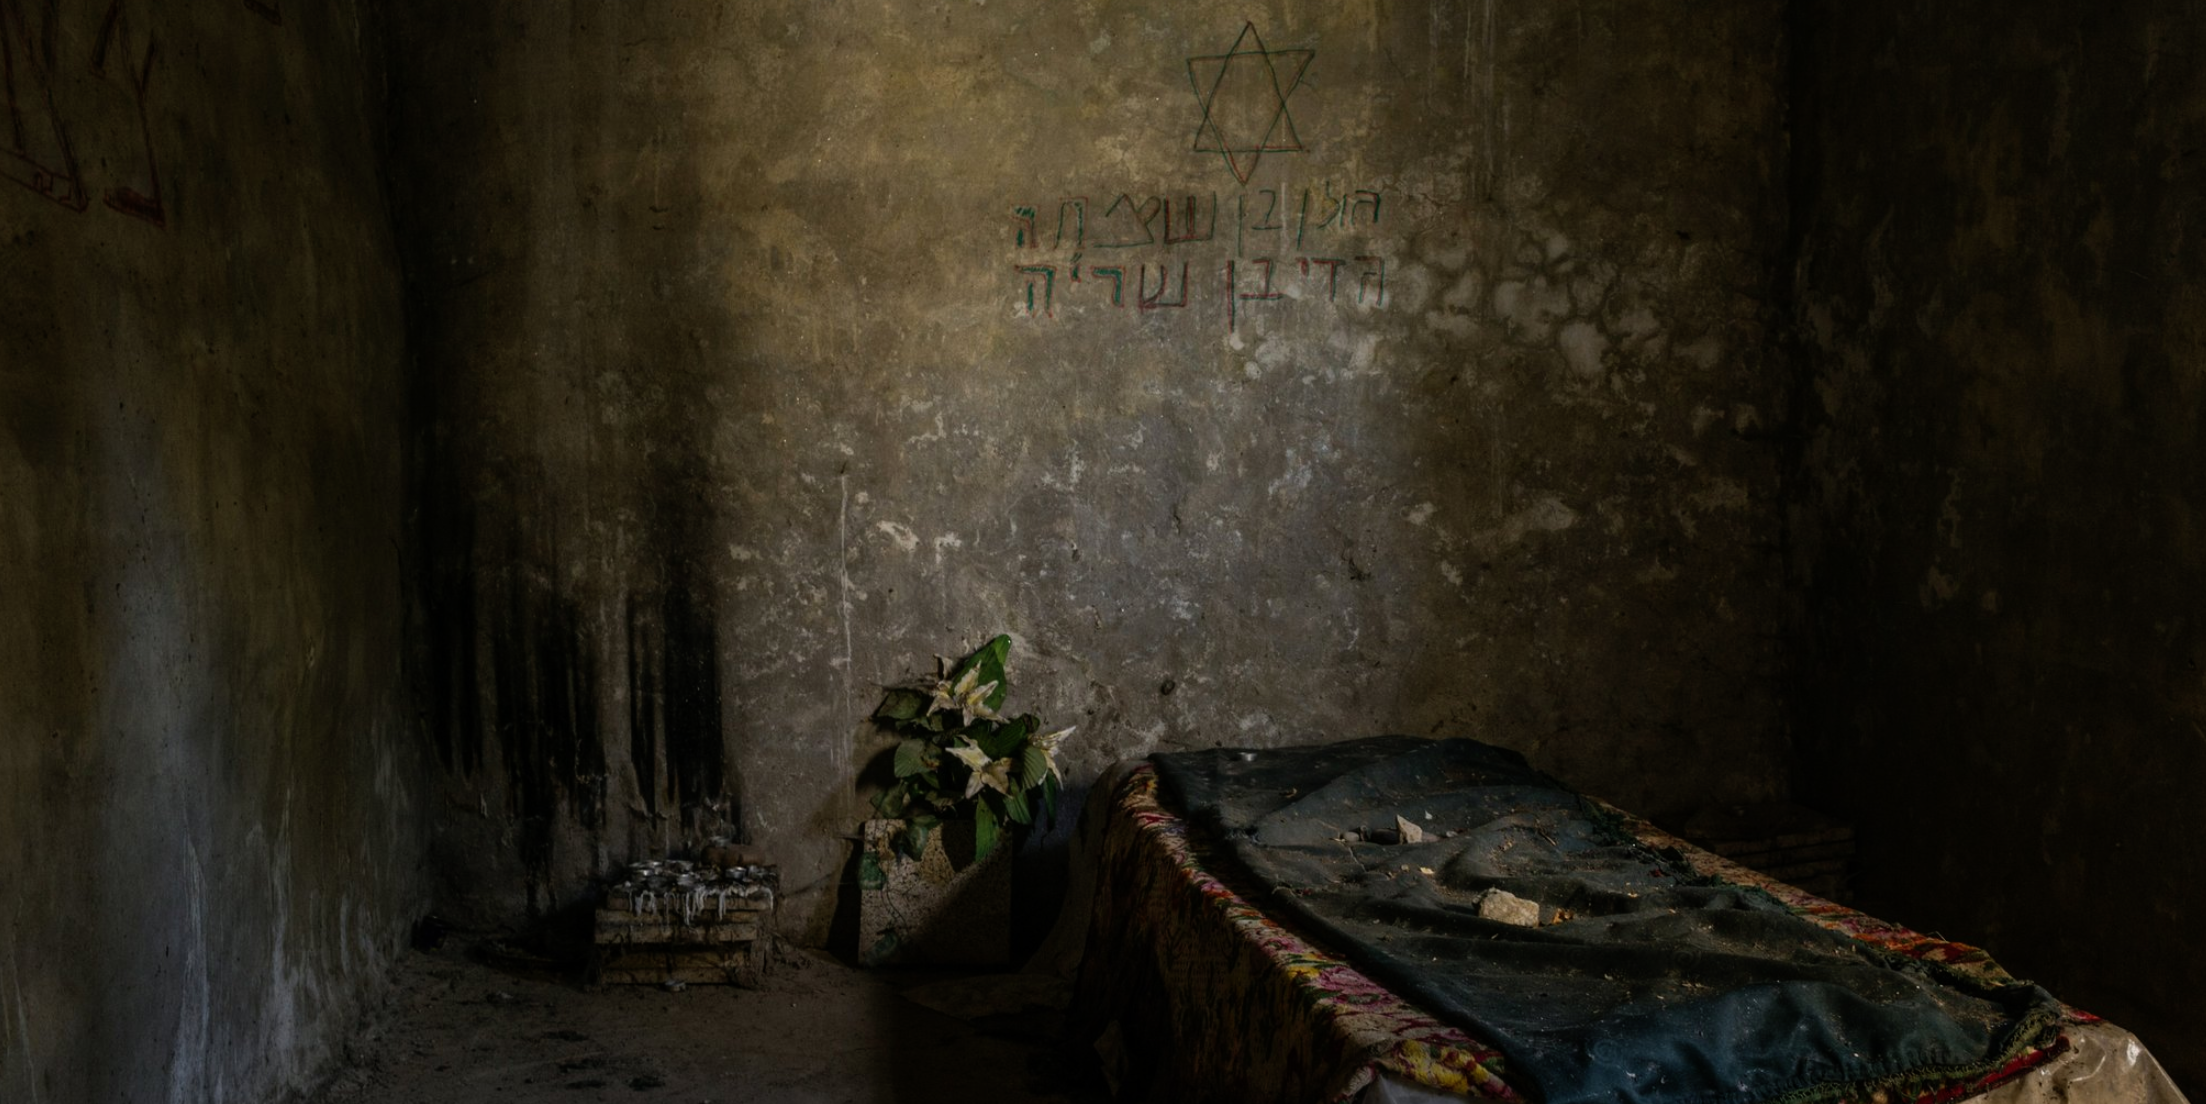 An Iraqi Town Where Muslims, Jews and Christians Coexist, in Theory